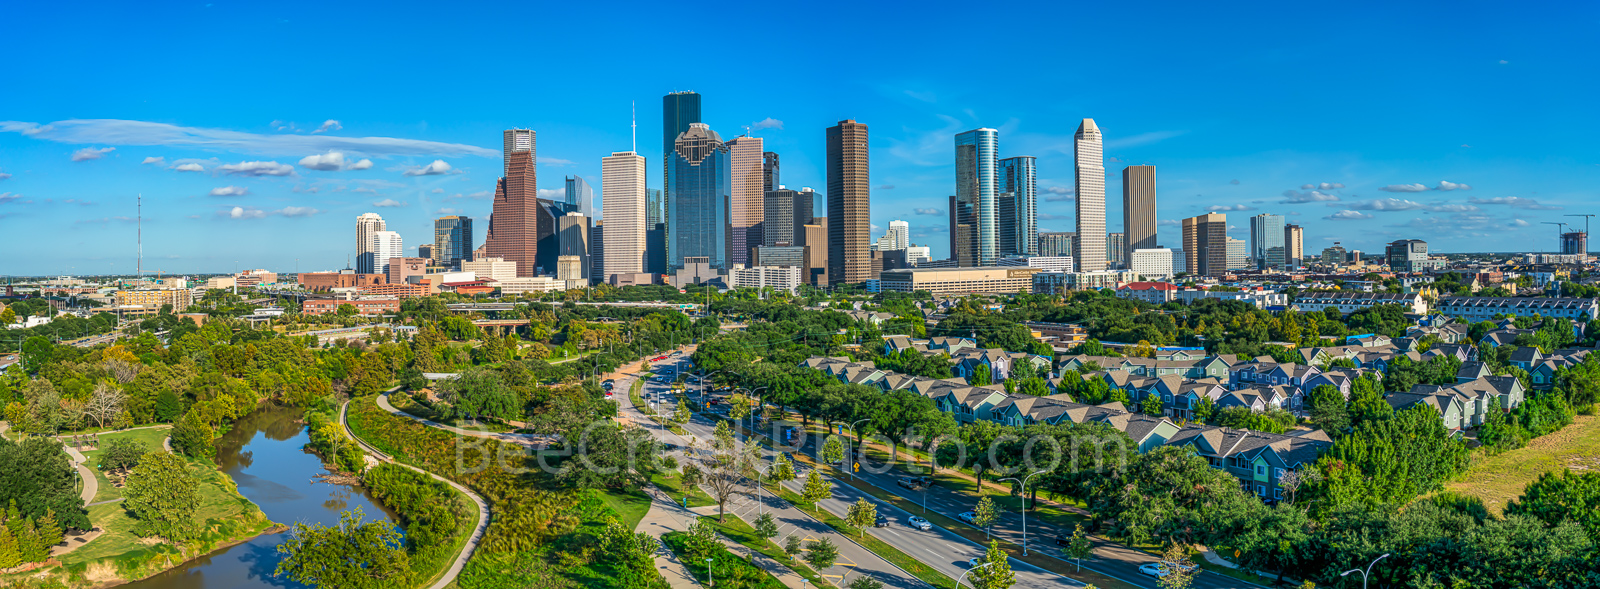 Houston, Aerial Houston skyline Panorama, aerial, skyline, cityscape, pano, panorama, cityscapes, city, park, skylines, downtown, skyscrapers, bayou, green, Eleanor tinsley Park, Jamail Skate Park, dr, photo